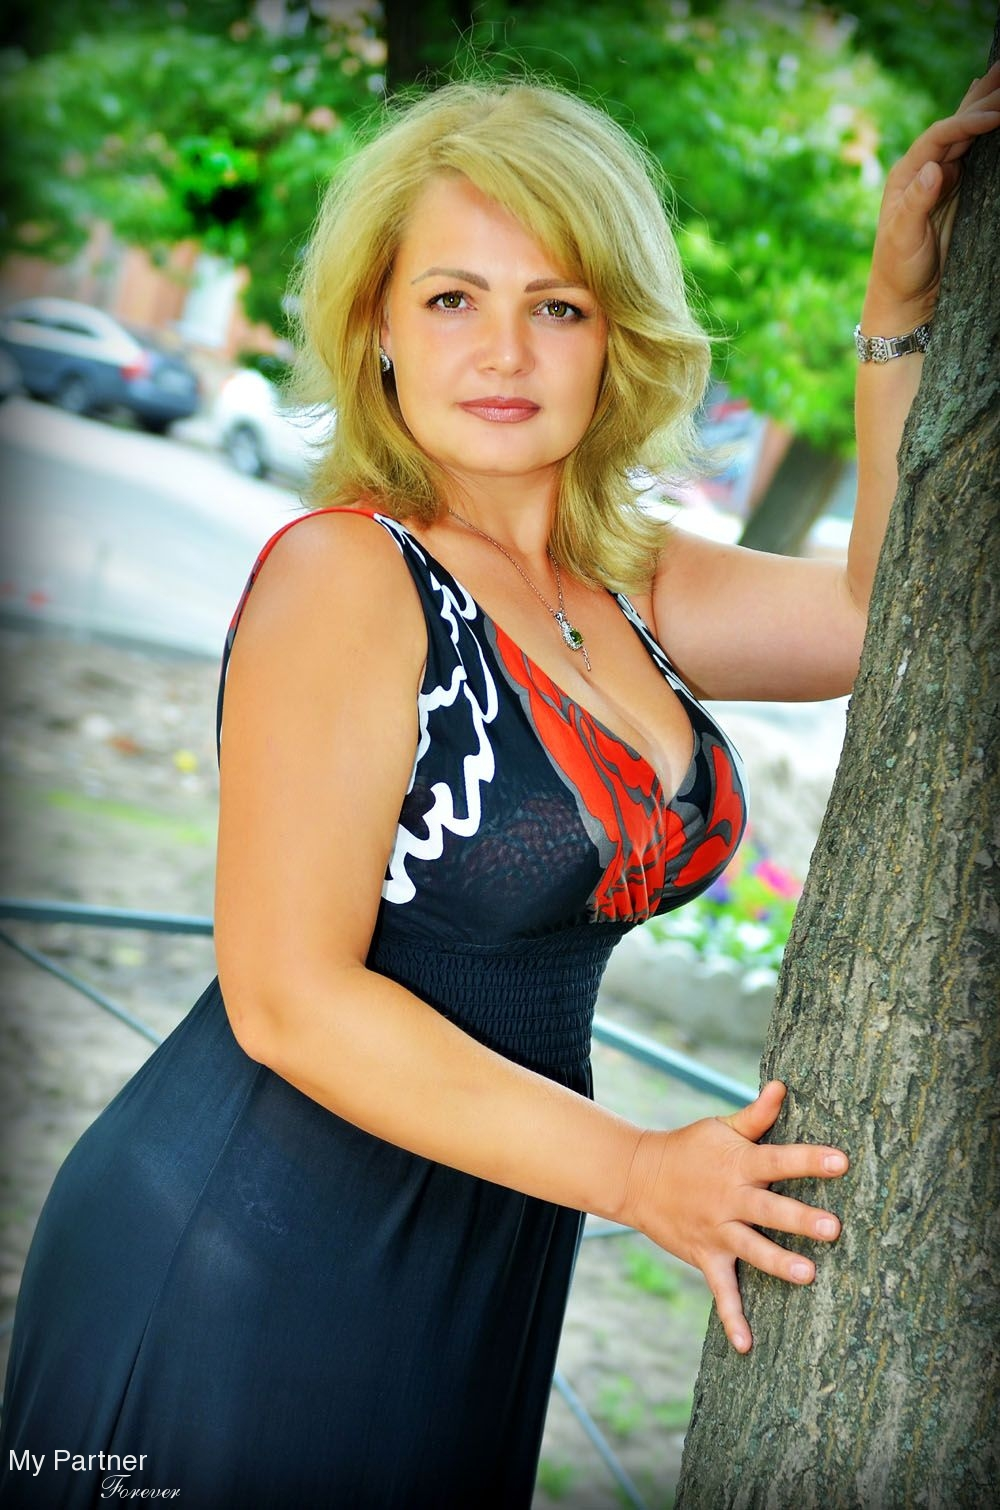 brodnax divorced singles personals Meet single men in brodnax is it that time in your life that you are ready to find the single man of your dreams meet singles looking for friendship.